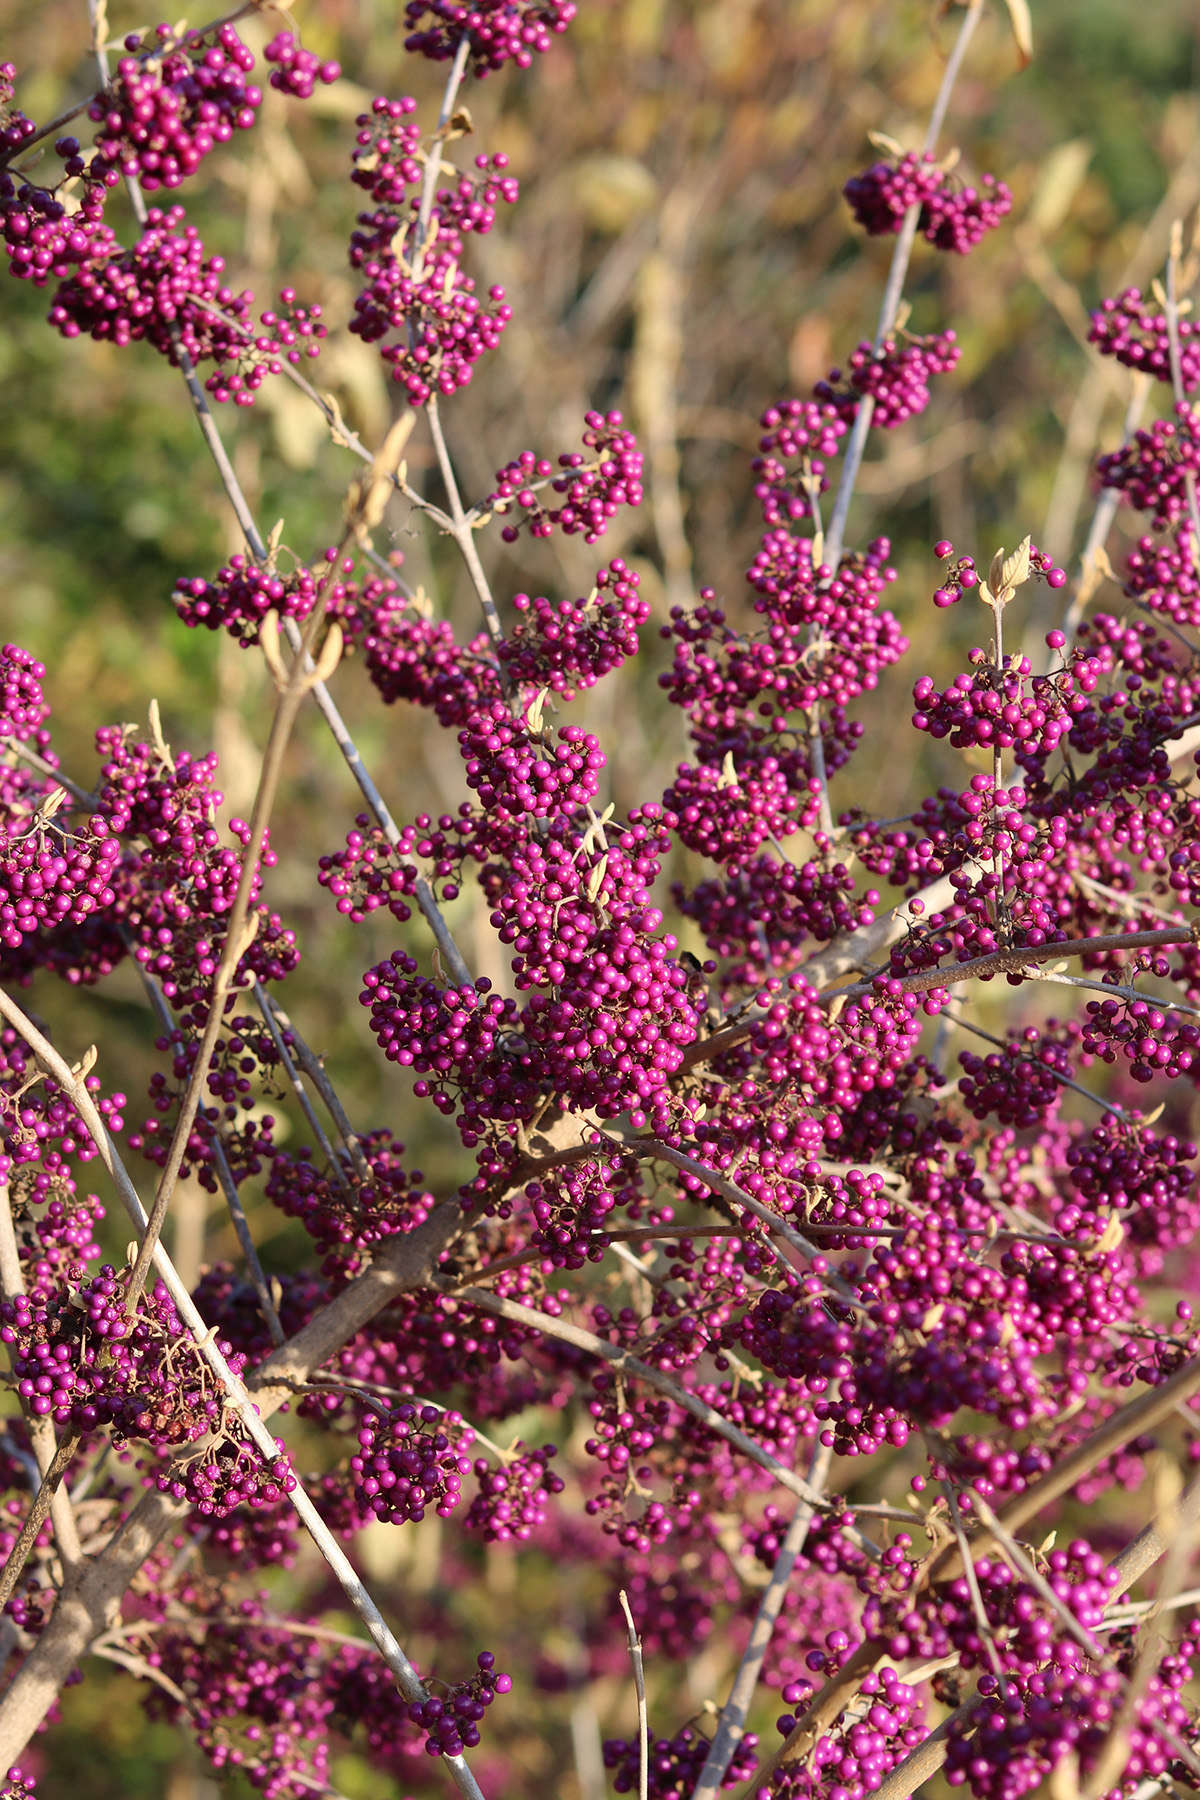 While there are dozens of species of Callicarpa—the genus to which beautyberries belong—the one we recommend planting on its home continent is a North American native, Callicarpa americana.